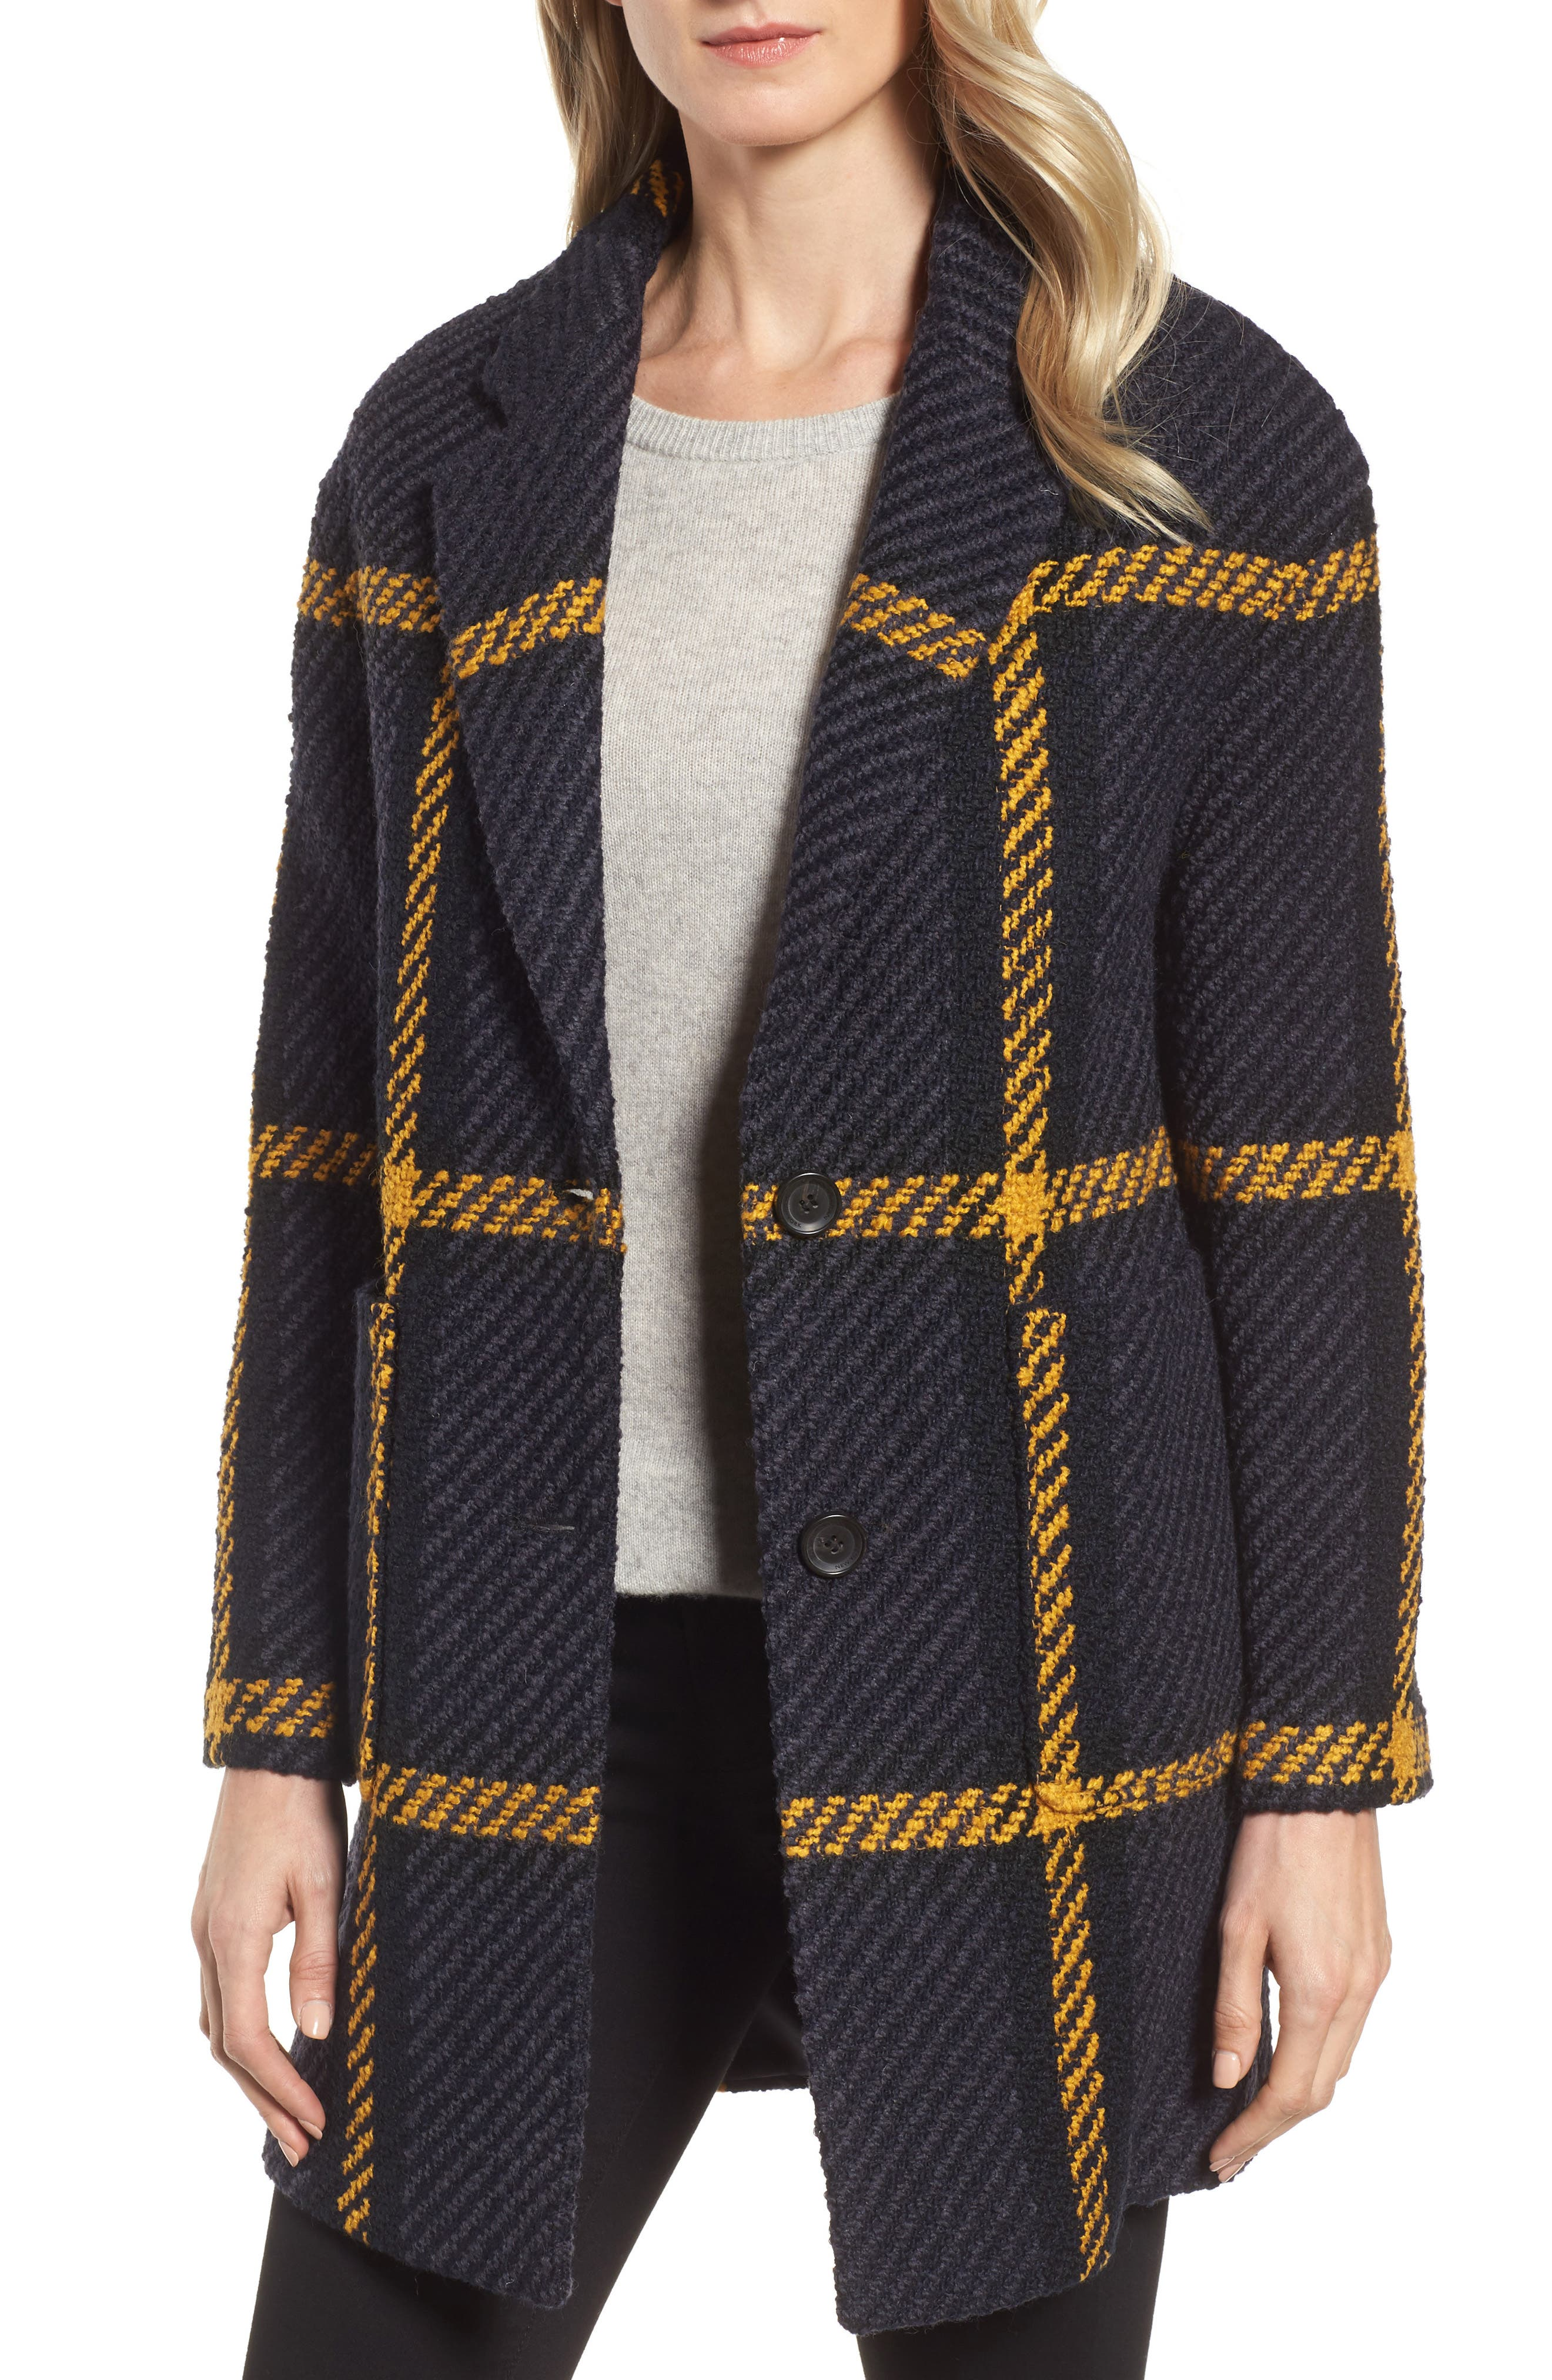 DKNY Textured Plaid Wool Blend Coat,                         Main,                         color, Black/ Navy/ Yellow